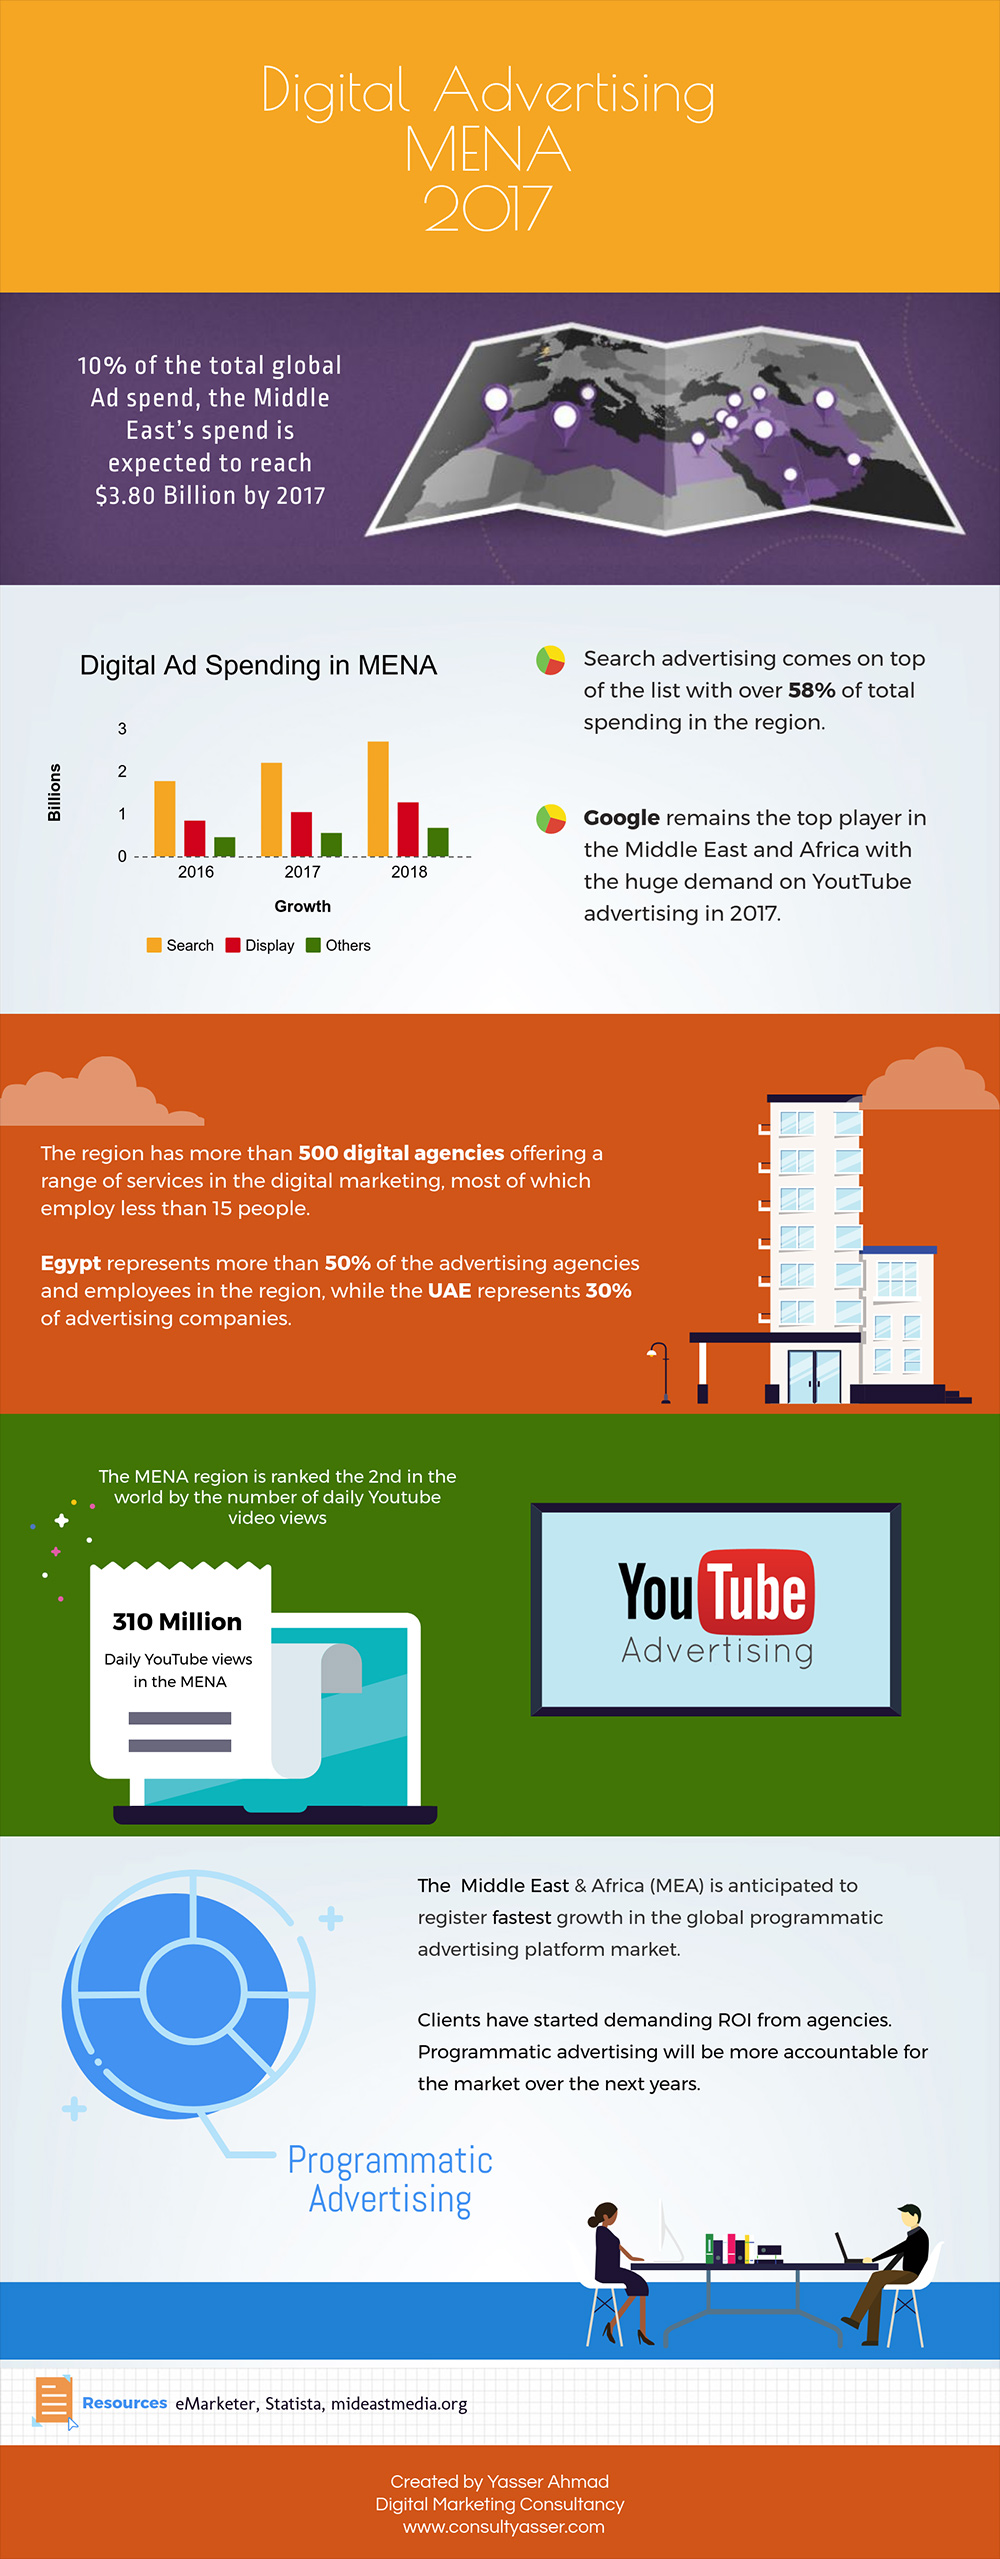 infographic digital advertising middle east 2017